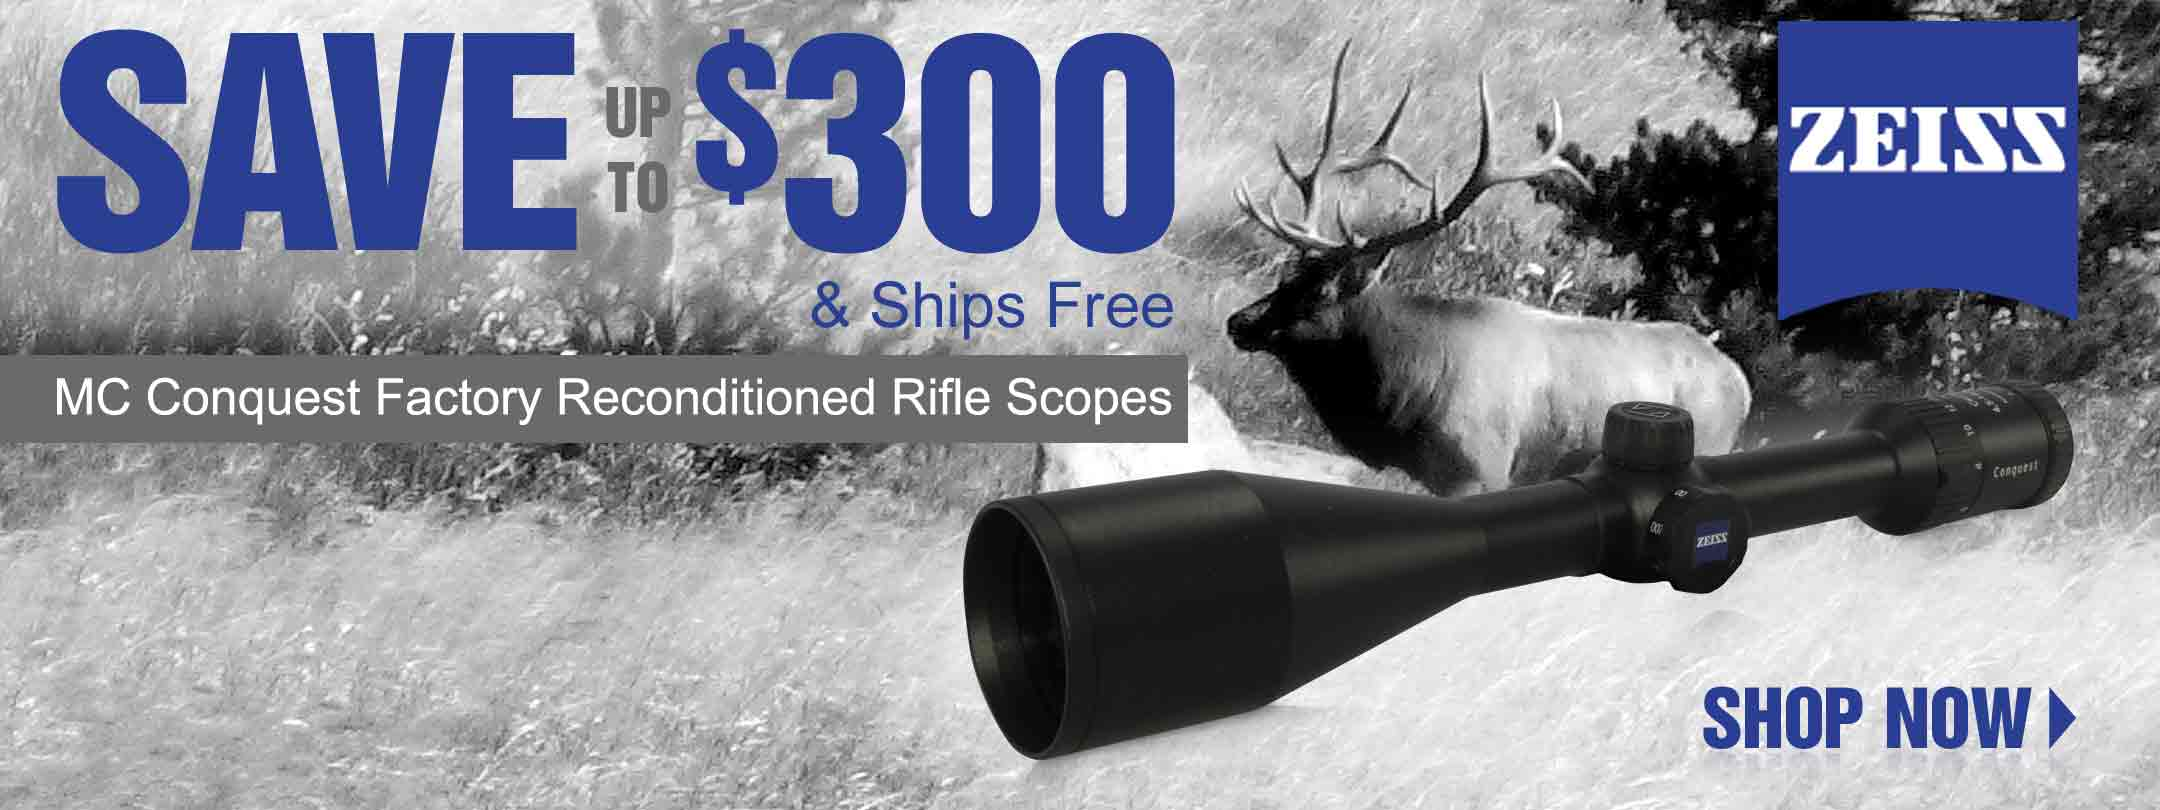 Save up to 30% on Zeiss MC Factory Reconditioned Rifle Scopes & Get Free Shipping